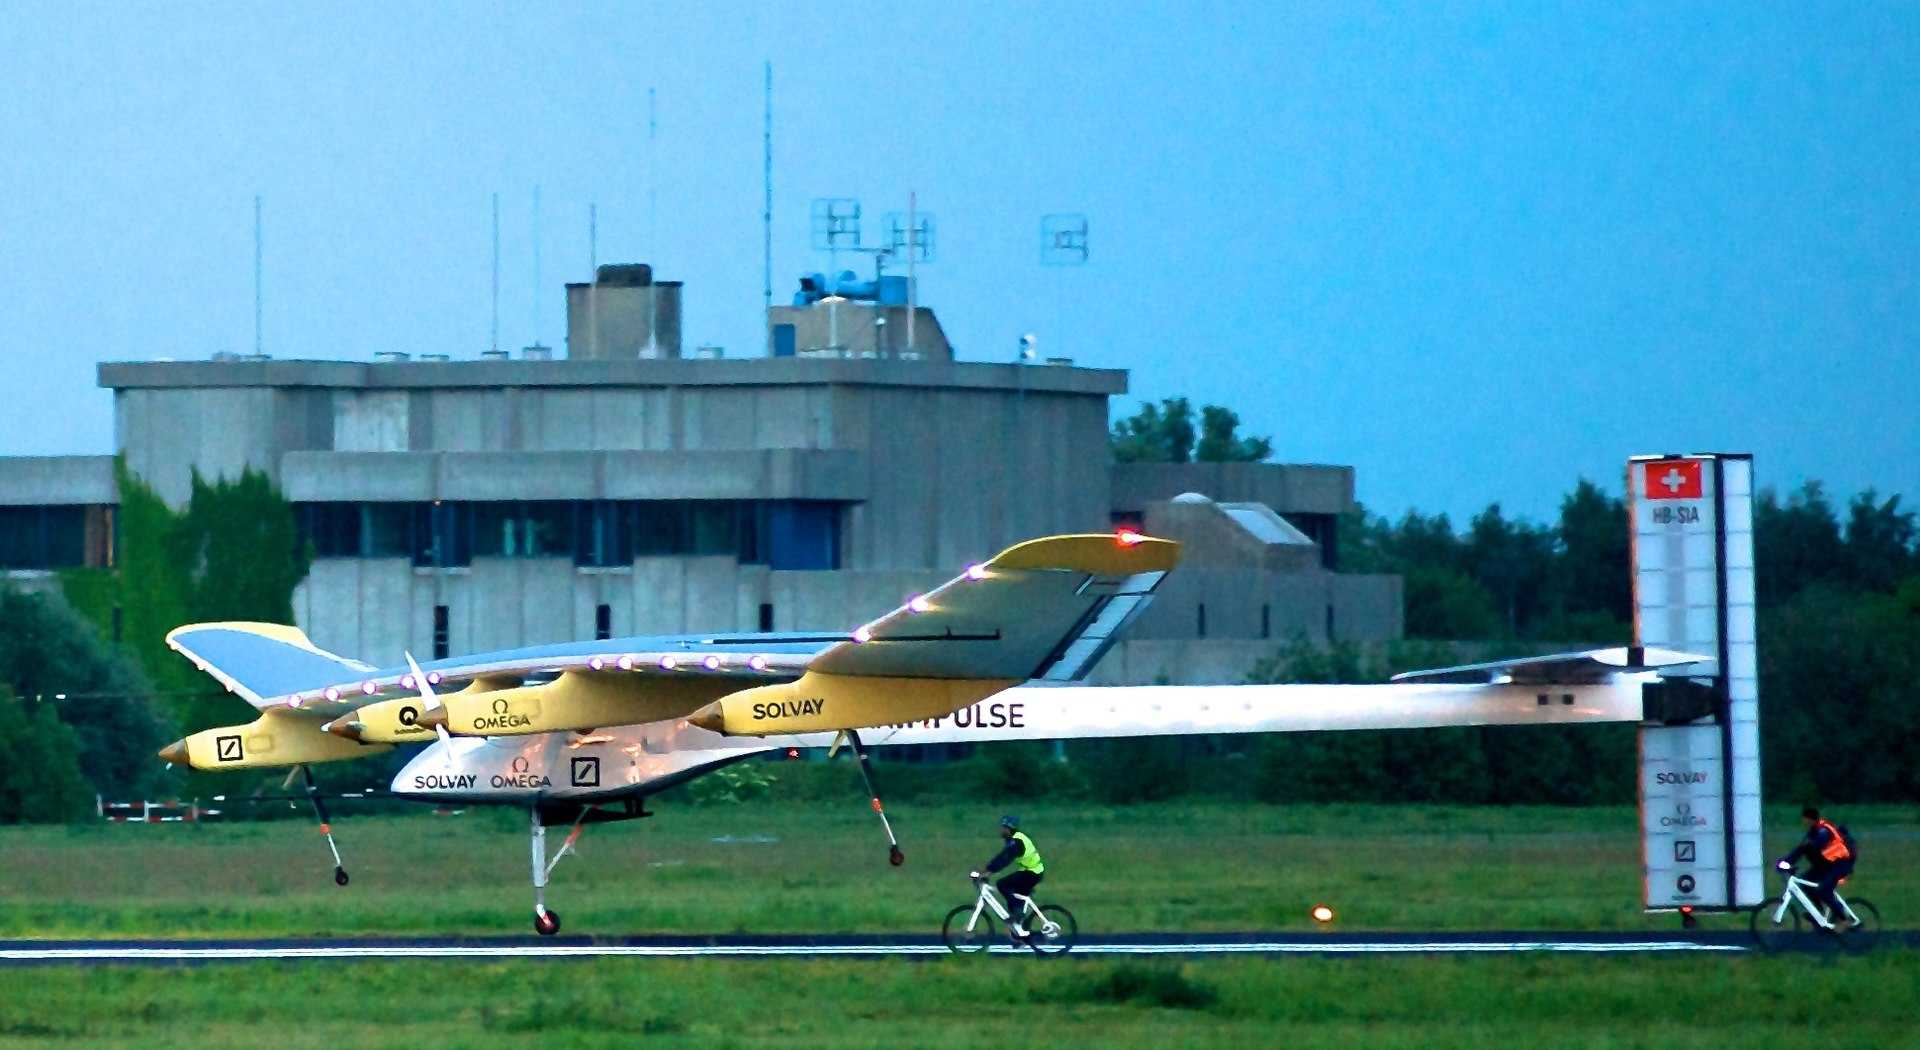 The first 24-hour flight by a solar-powered plane is completed by the Solar Impulse.